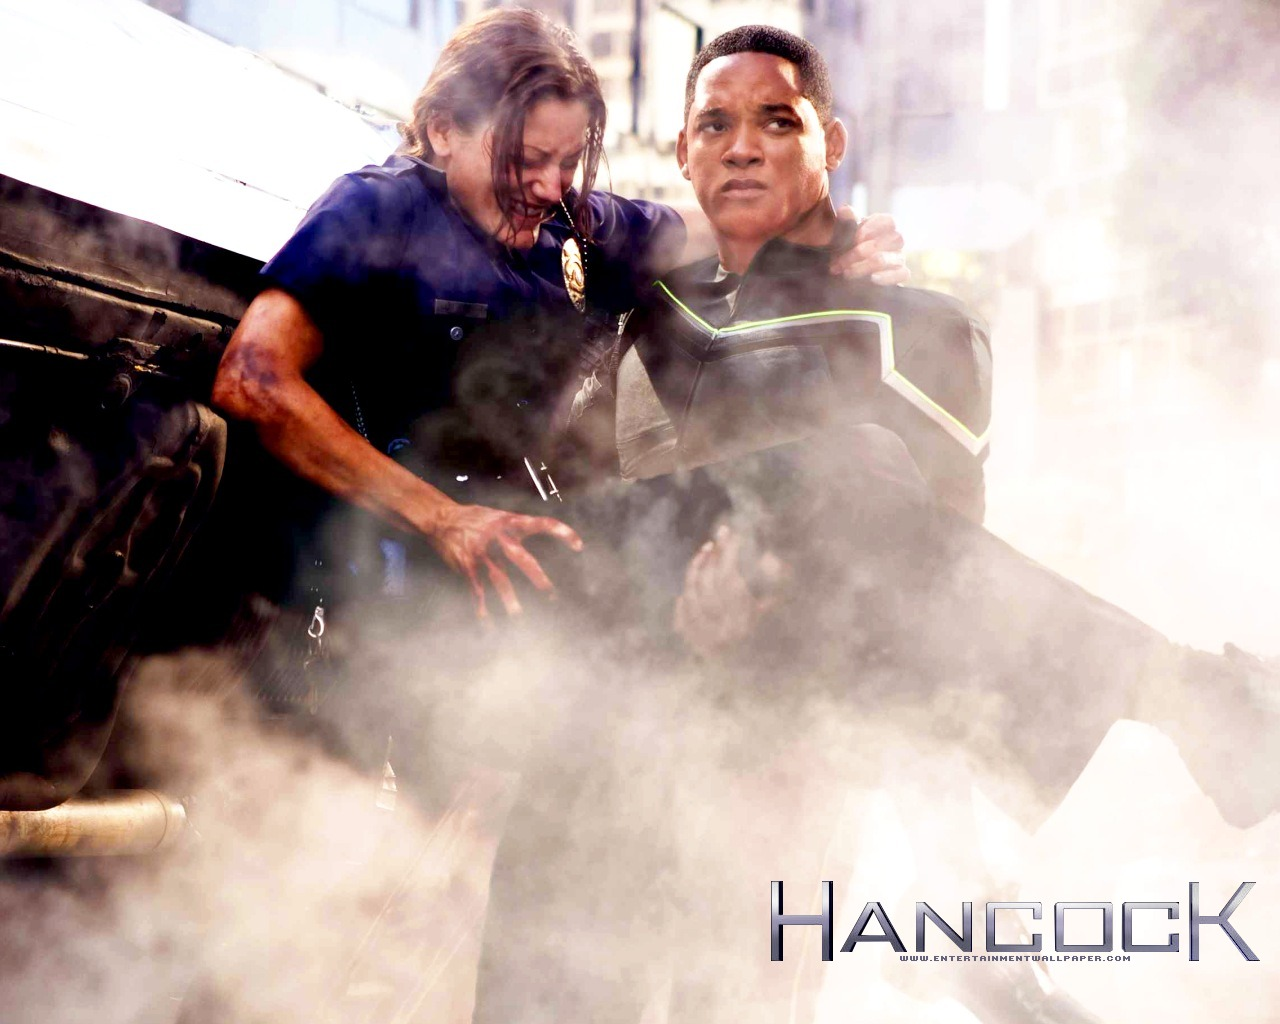 hancock - hancock wallpaper 25395056 - fanpop fanclubs